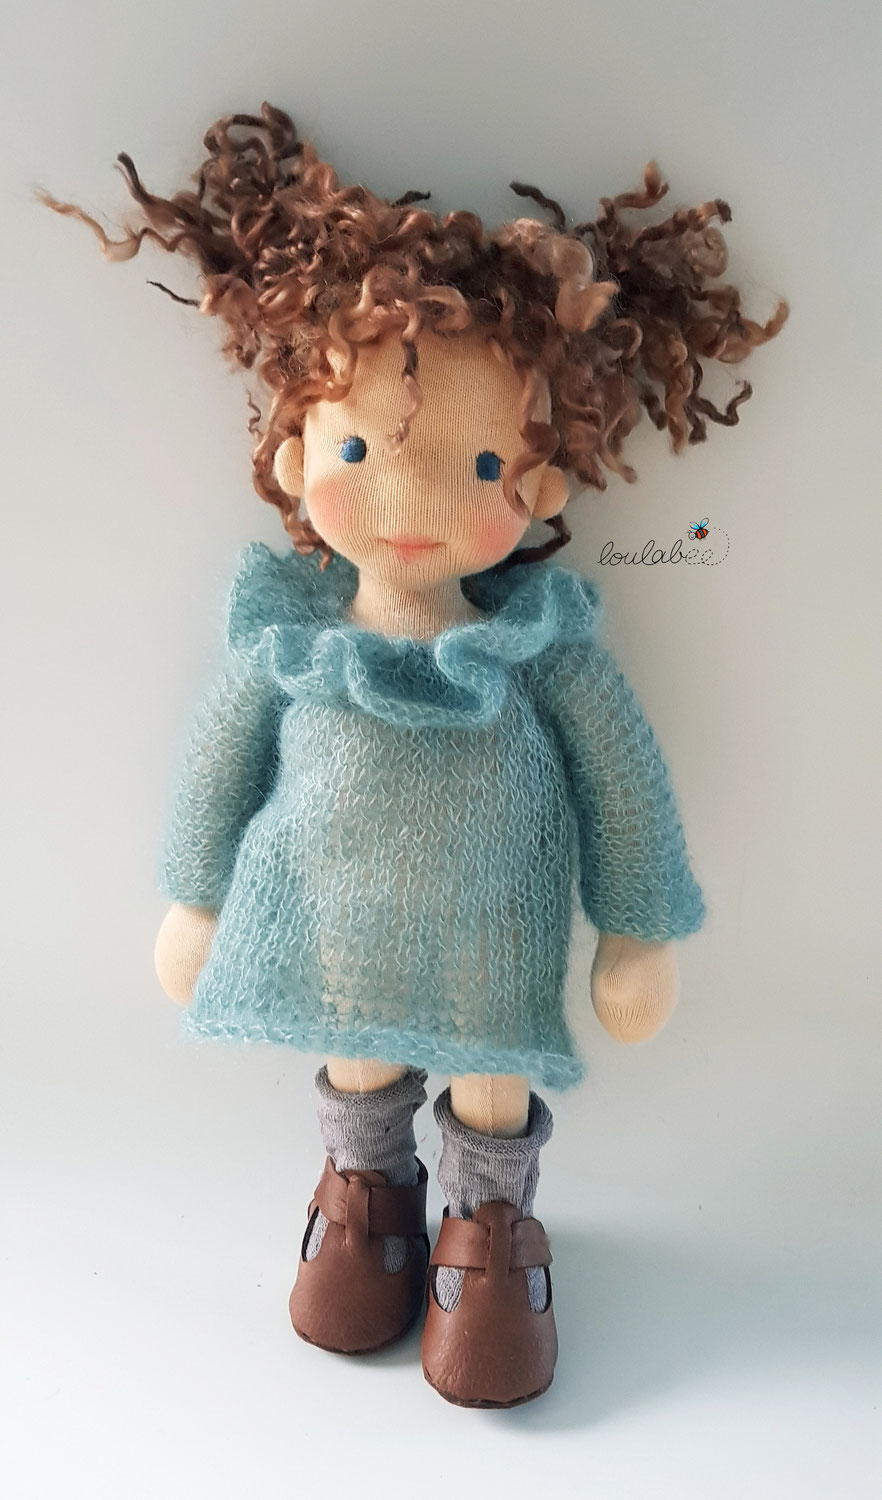 Creative process in doll making